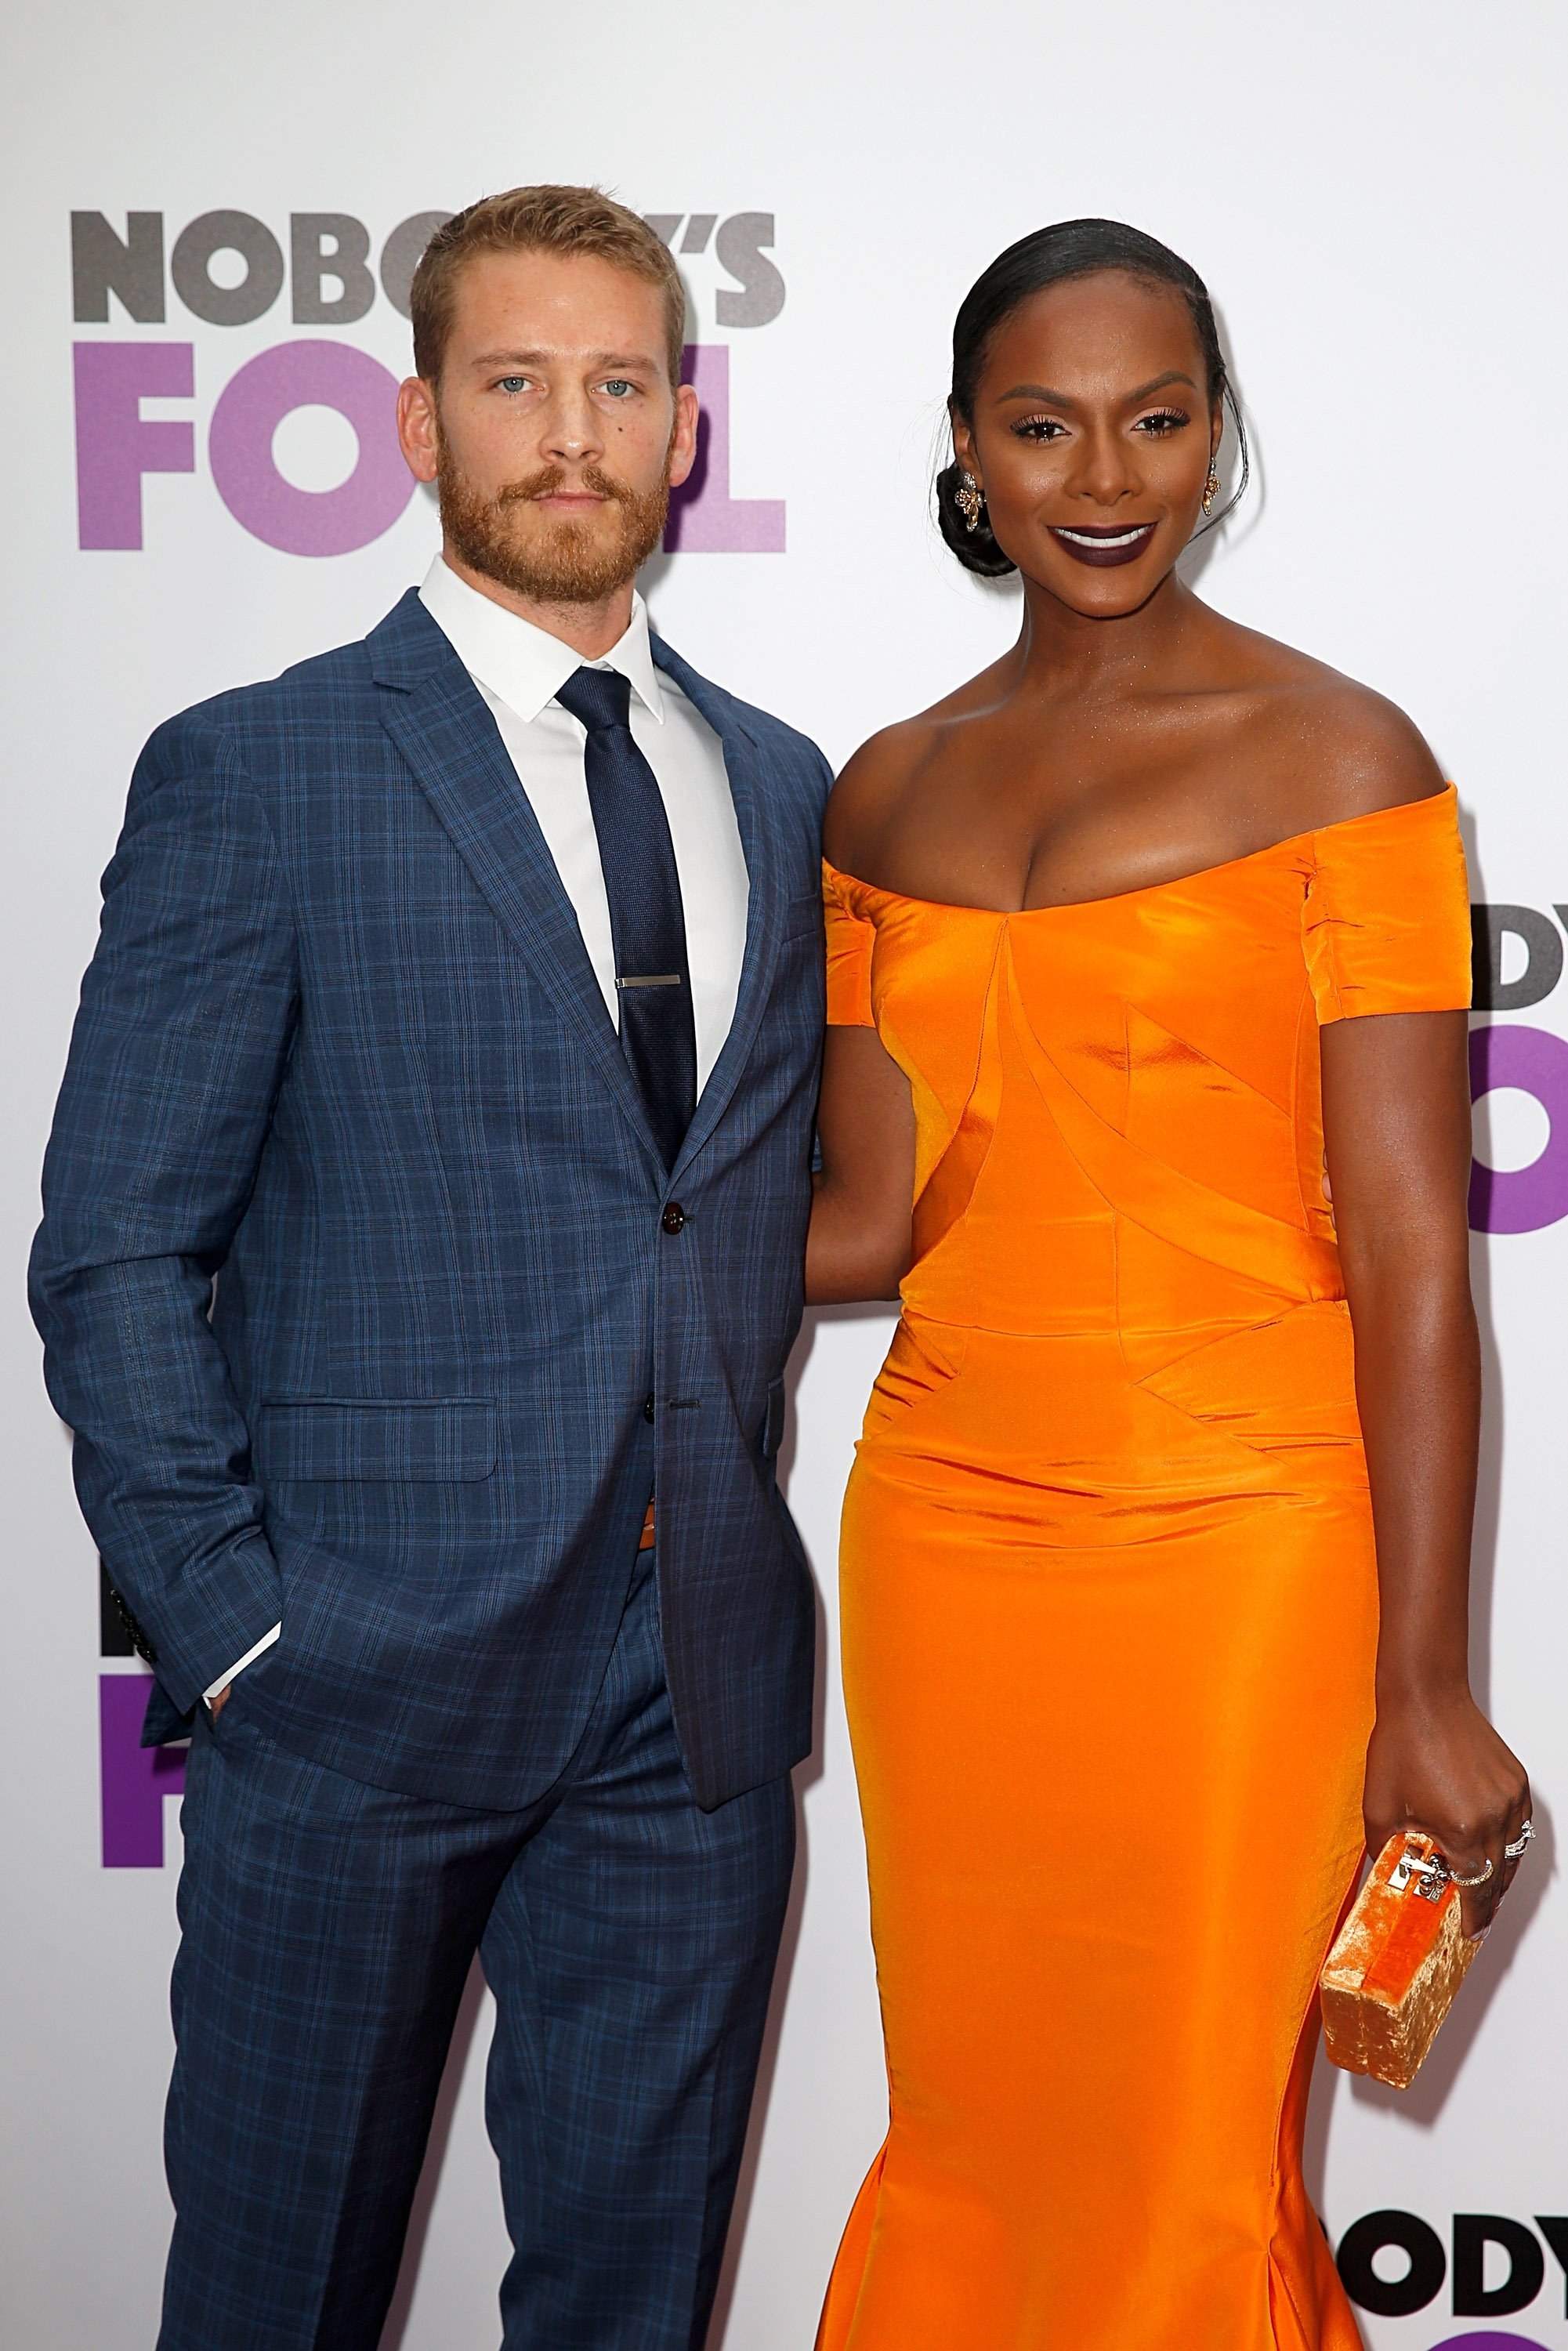 Nicholas James & Tika Sumpter at the Premiere of 'Nobody's Fool' on Oct. 28, 2018 in New York City | Photo: Getty Images